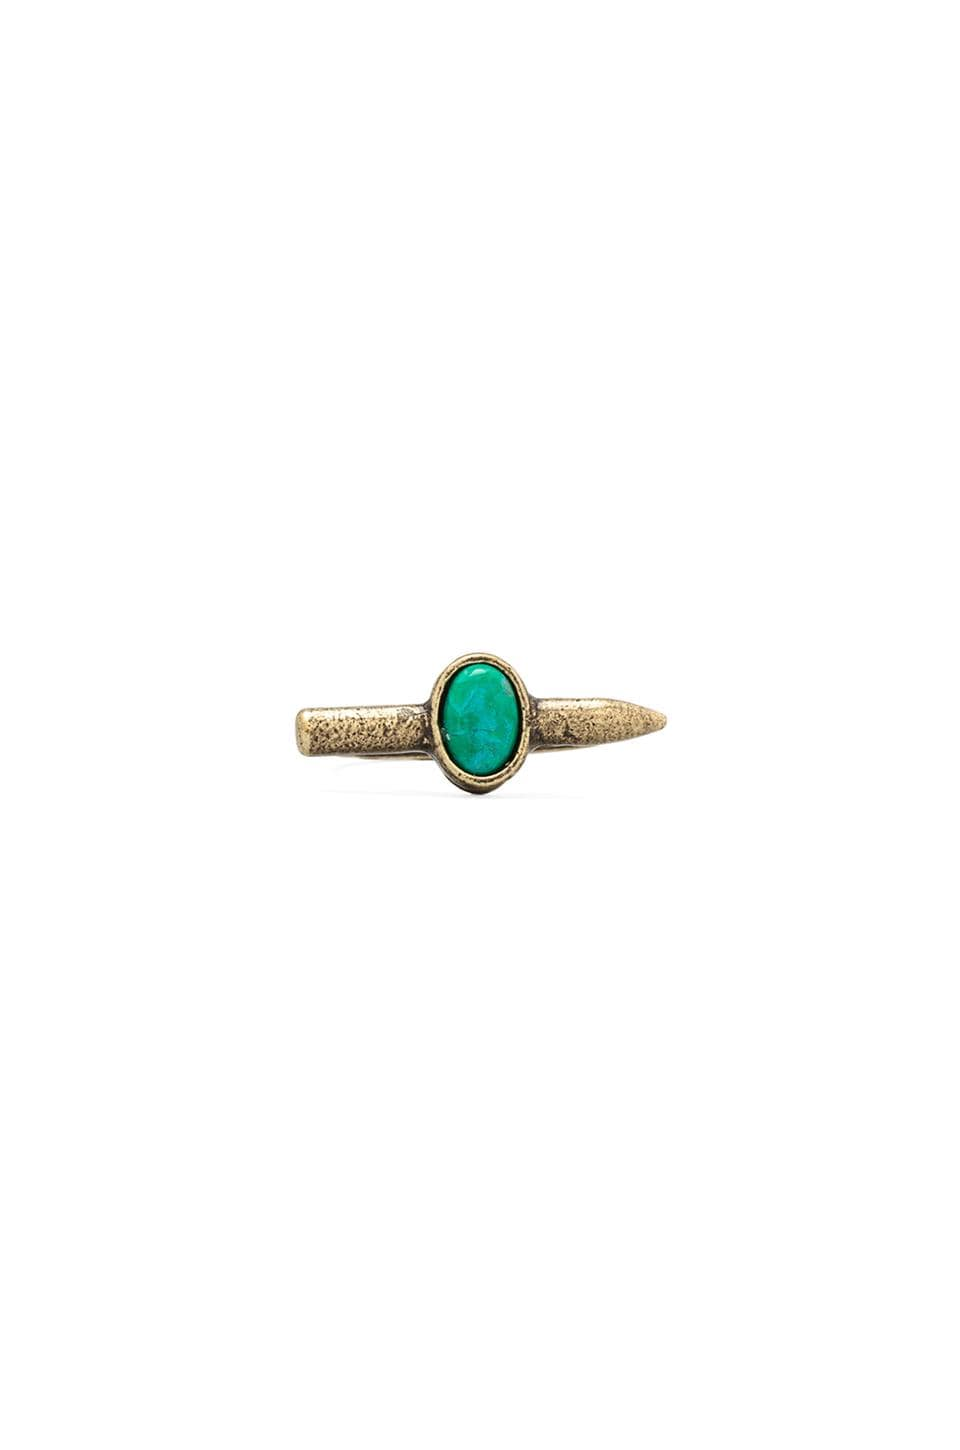 2 Bandits Bandit Bullet Ring in Gold/Turquoise